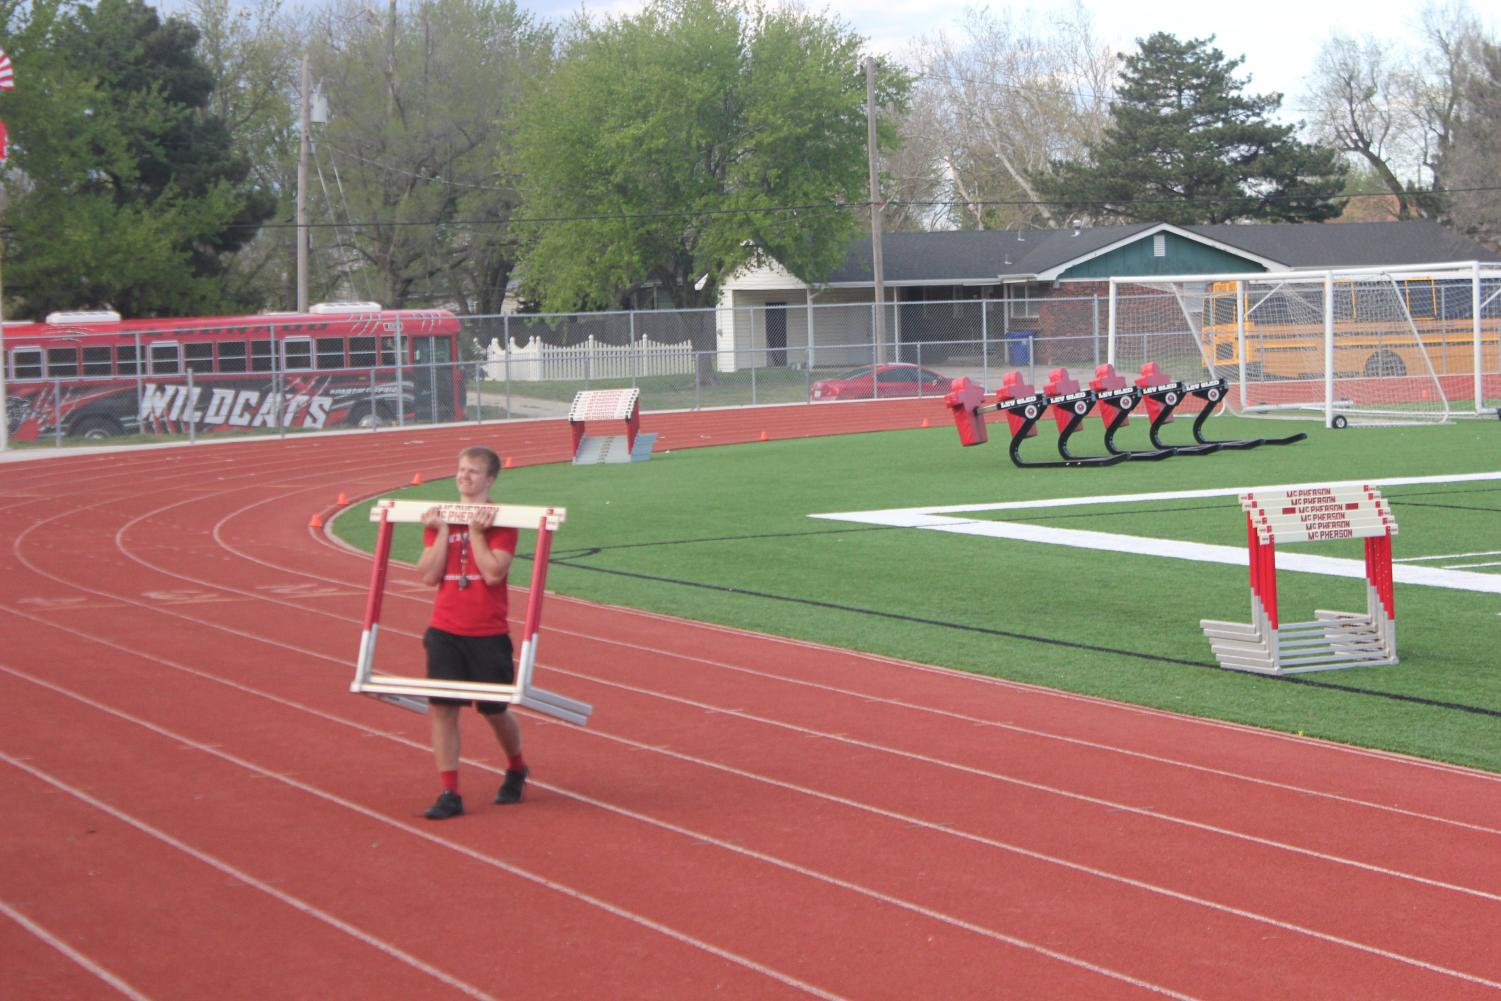 A+student+athlete+helps+move+hurtles+across+the+track+to+make+room+for+new+runners.+